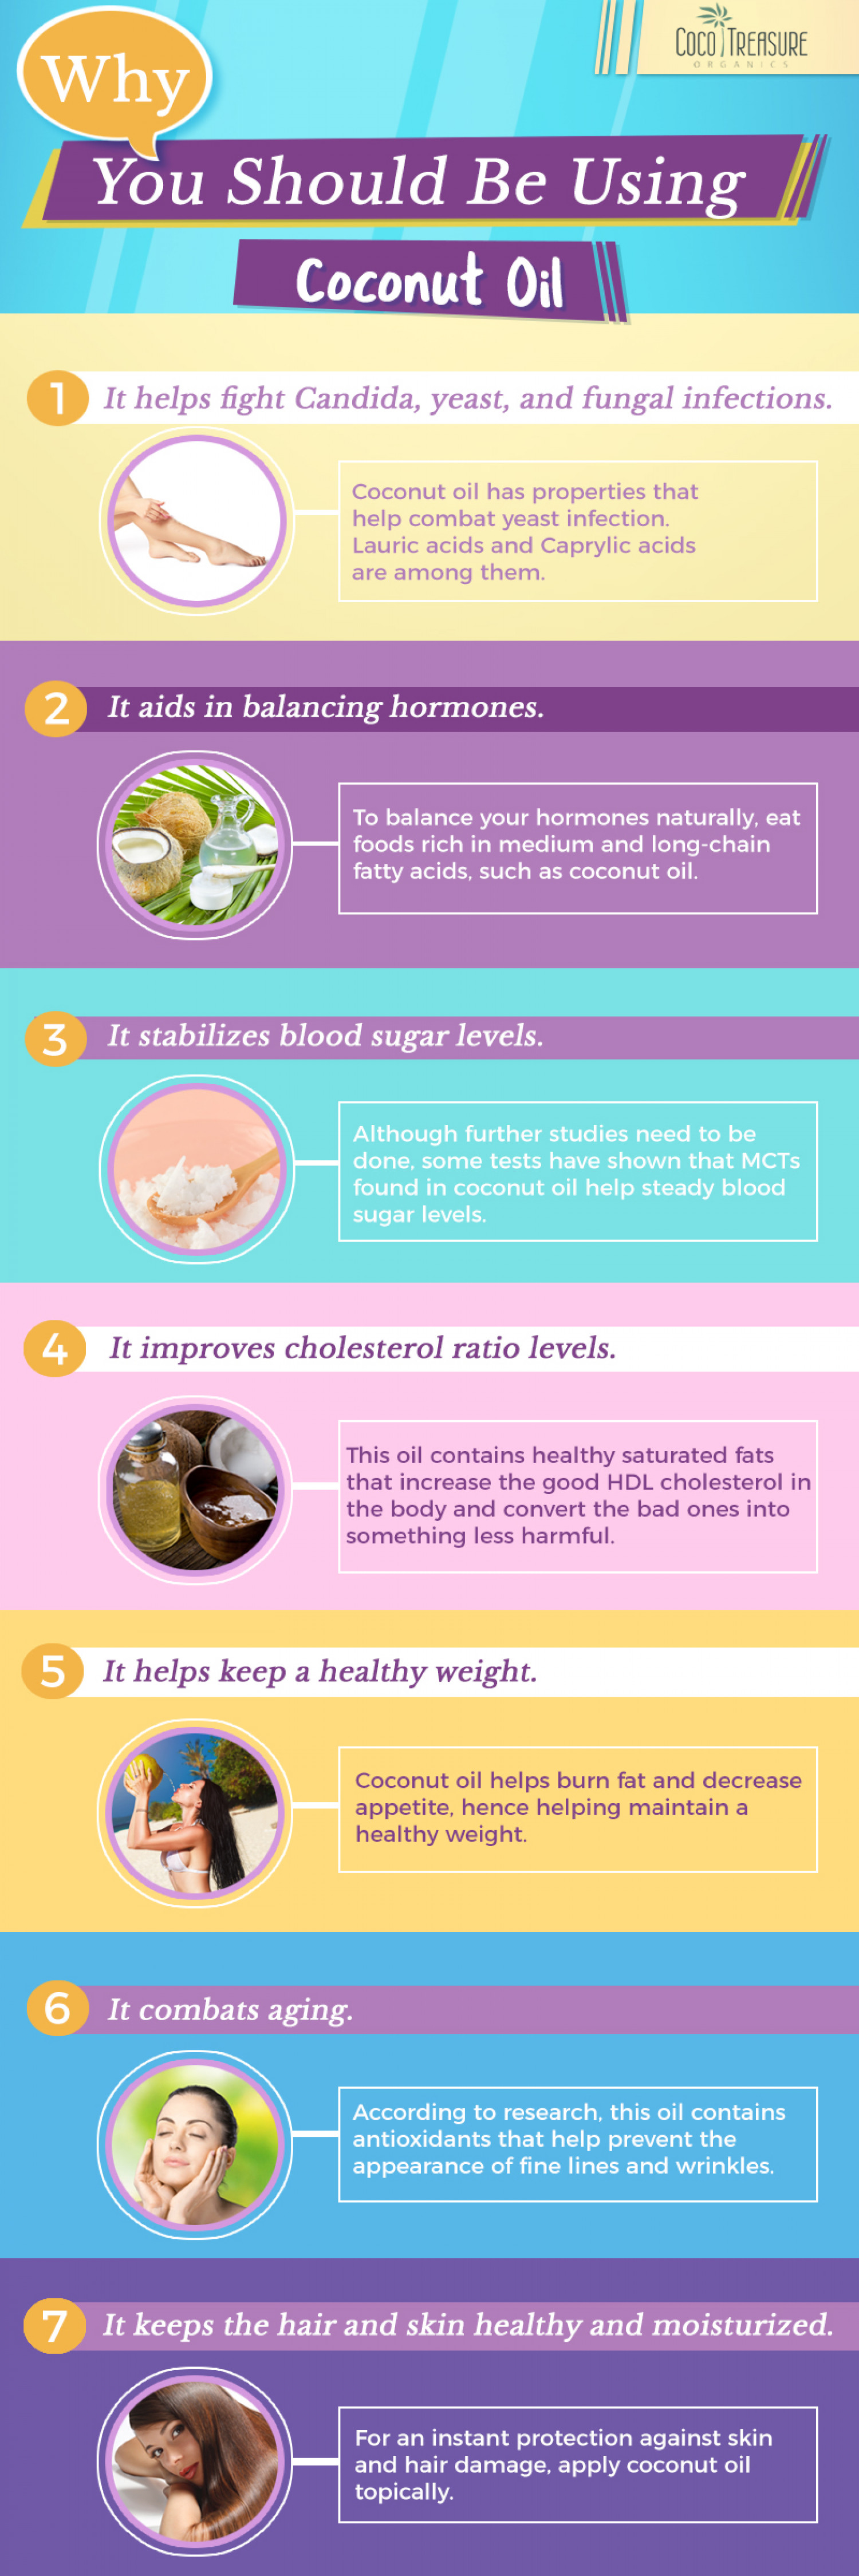 Why You Should Be Using Coconut Oil Infographic